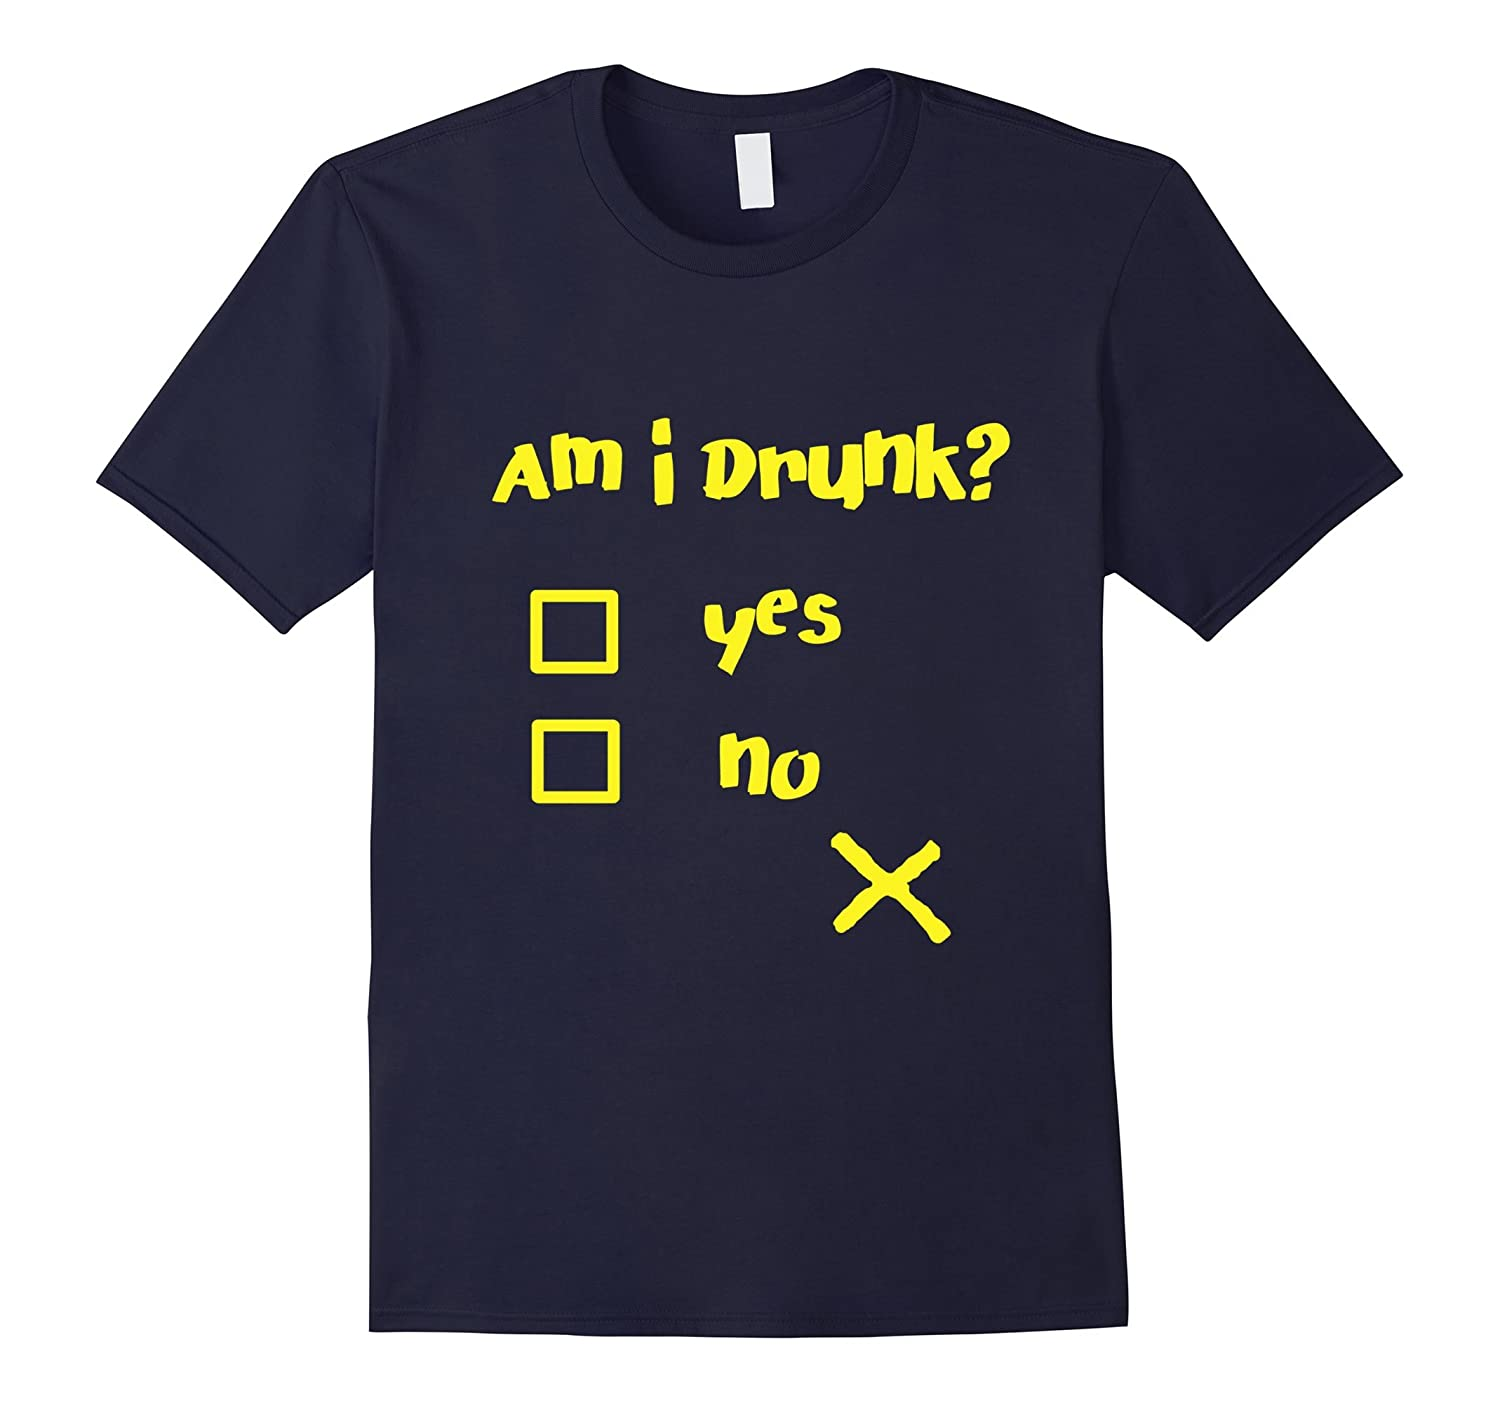 Am I Drunk T shirt- Am I drunk Shirt Funny Sassy Smart-Art